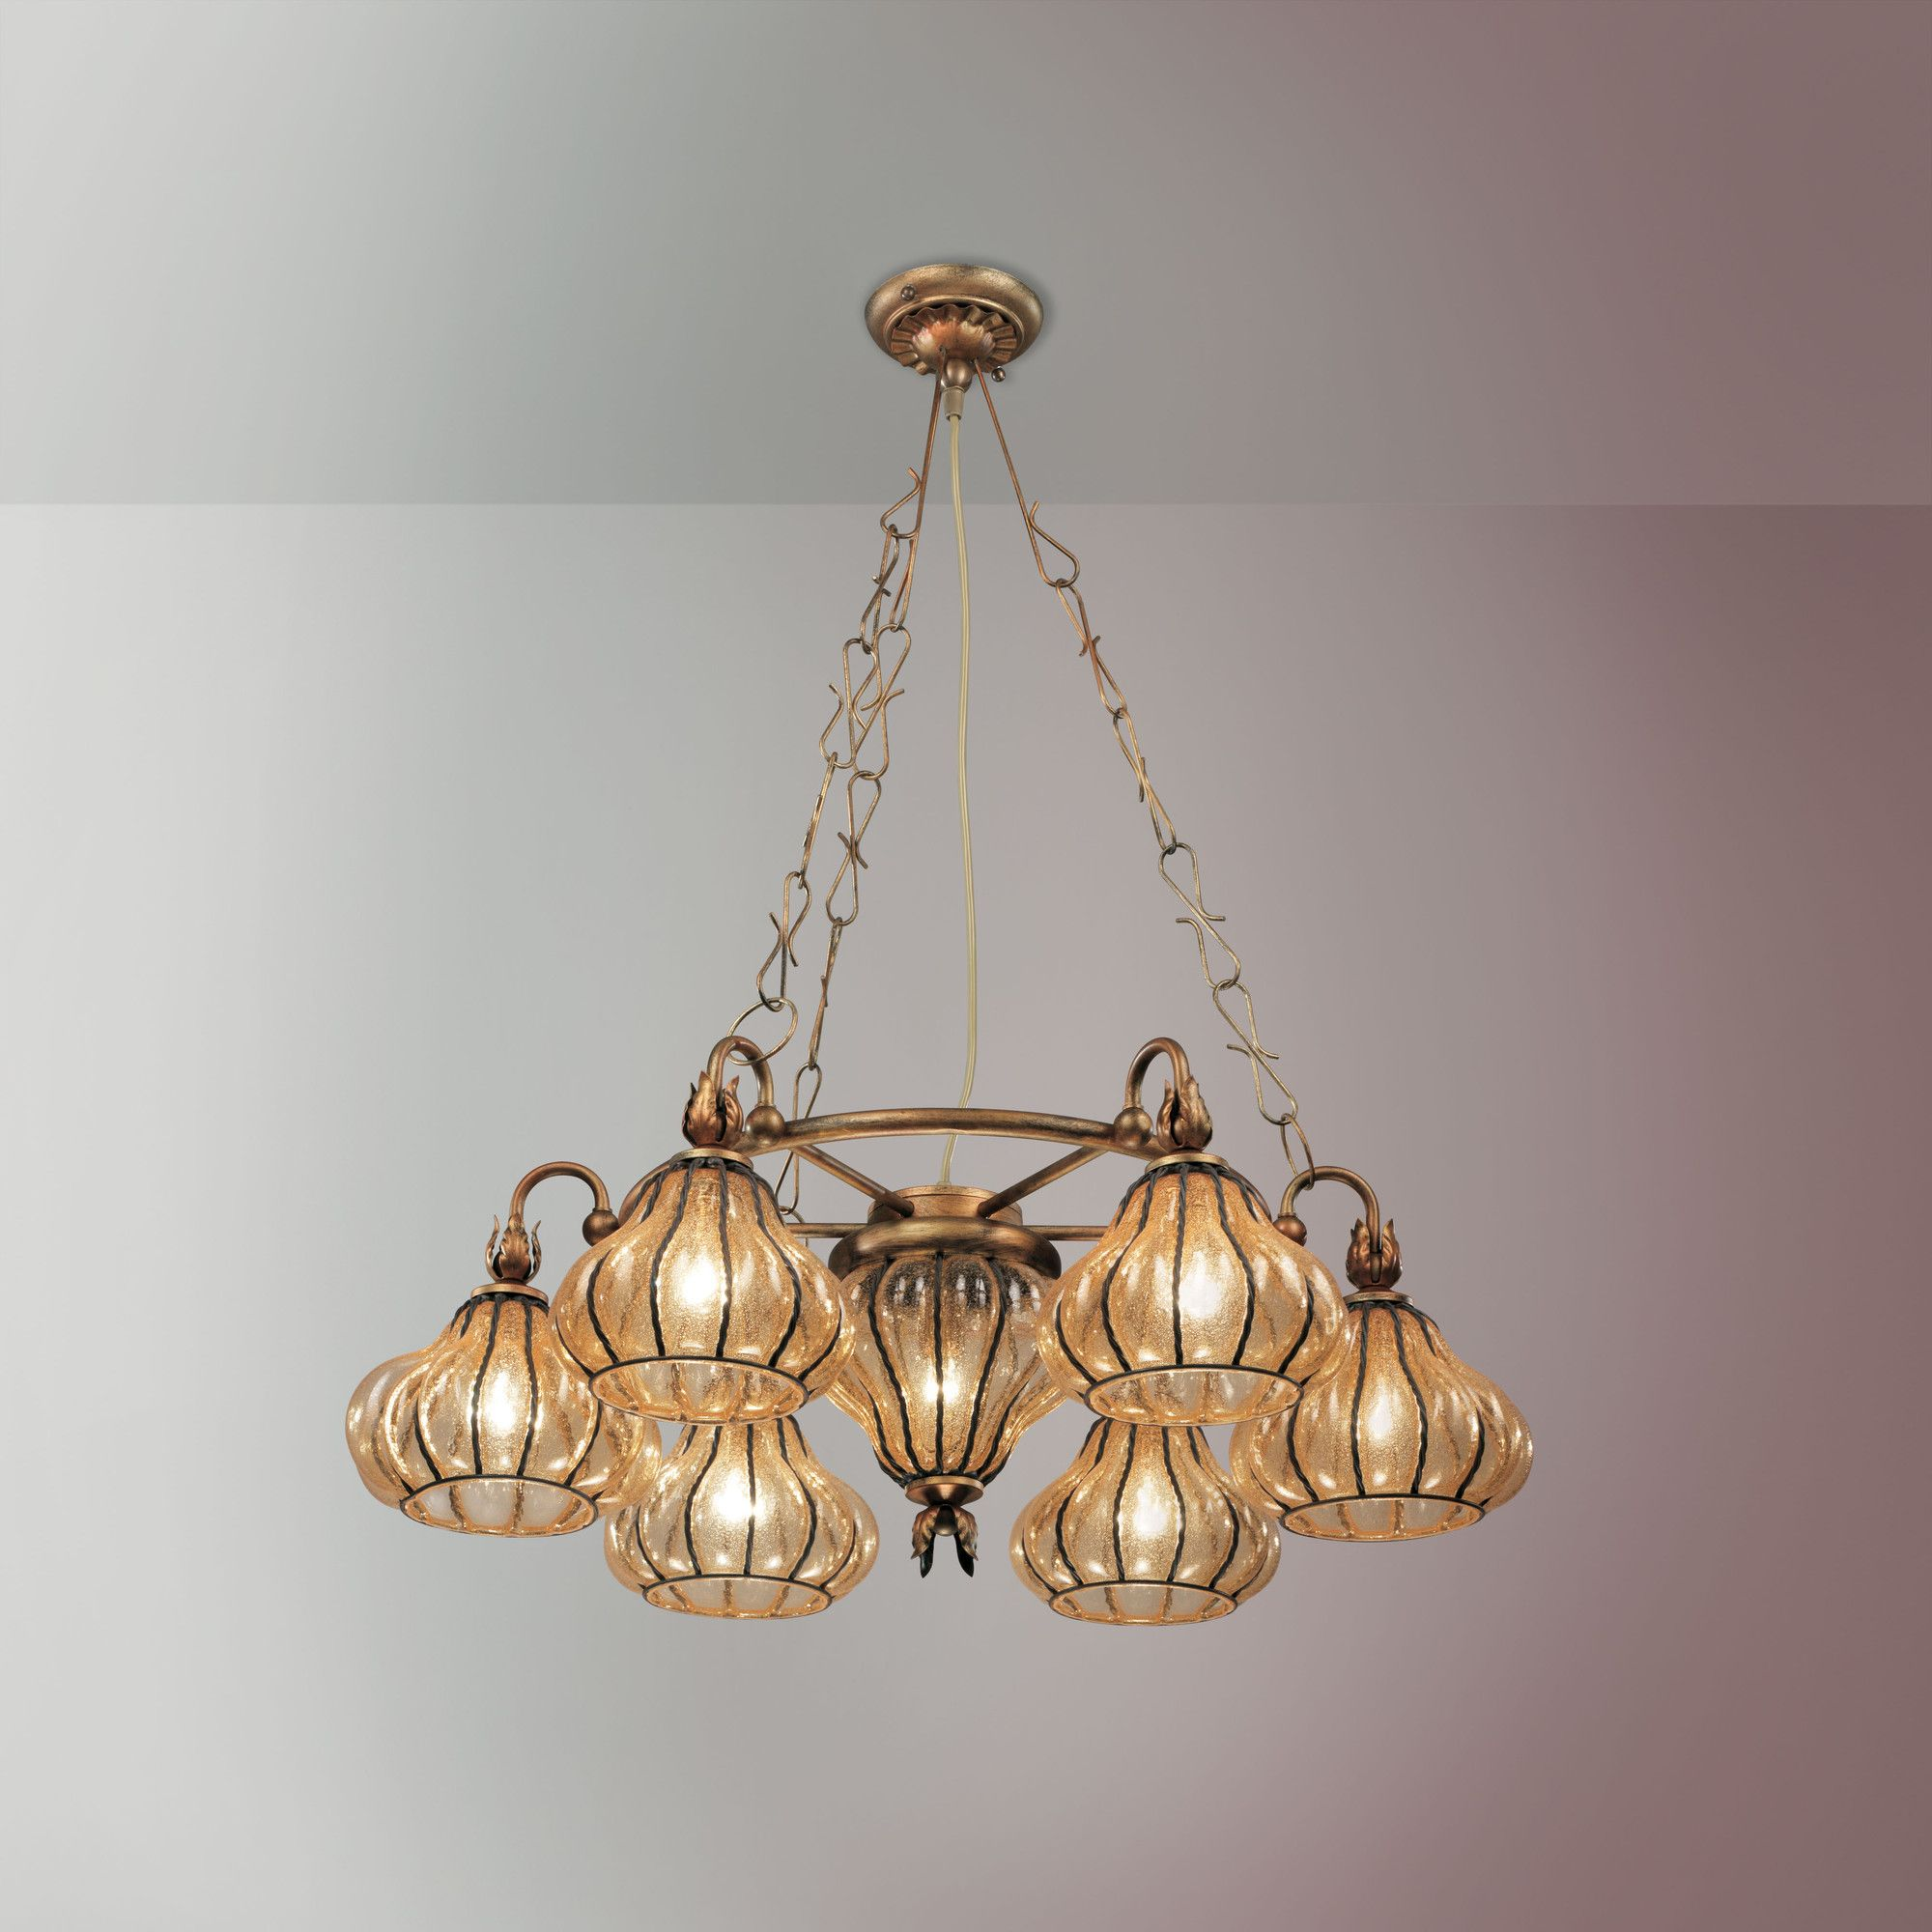 Siru Vecchia Murano Seven Light Pendant - Aged Amber at Tesco Direct